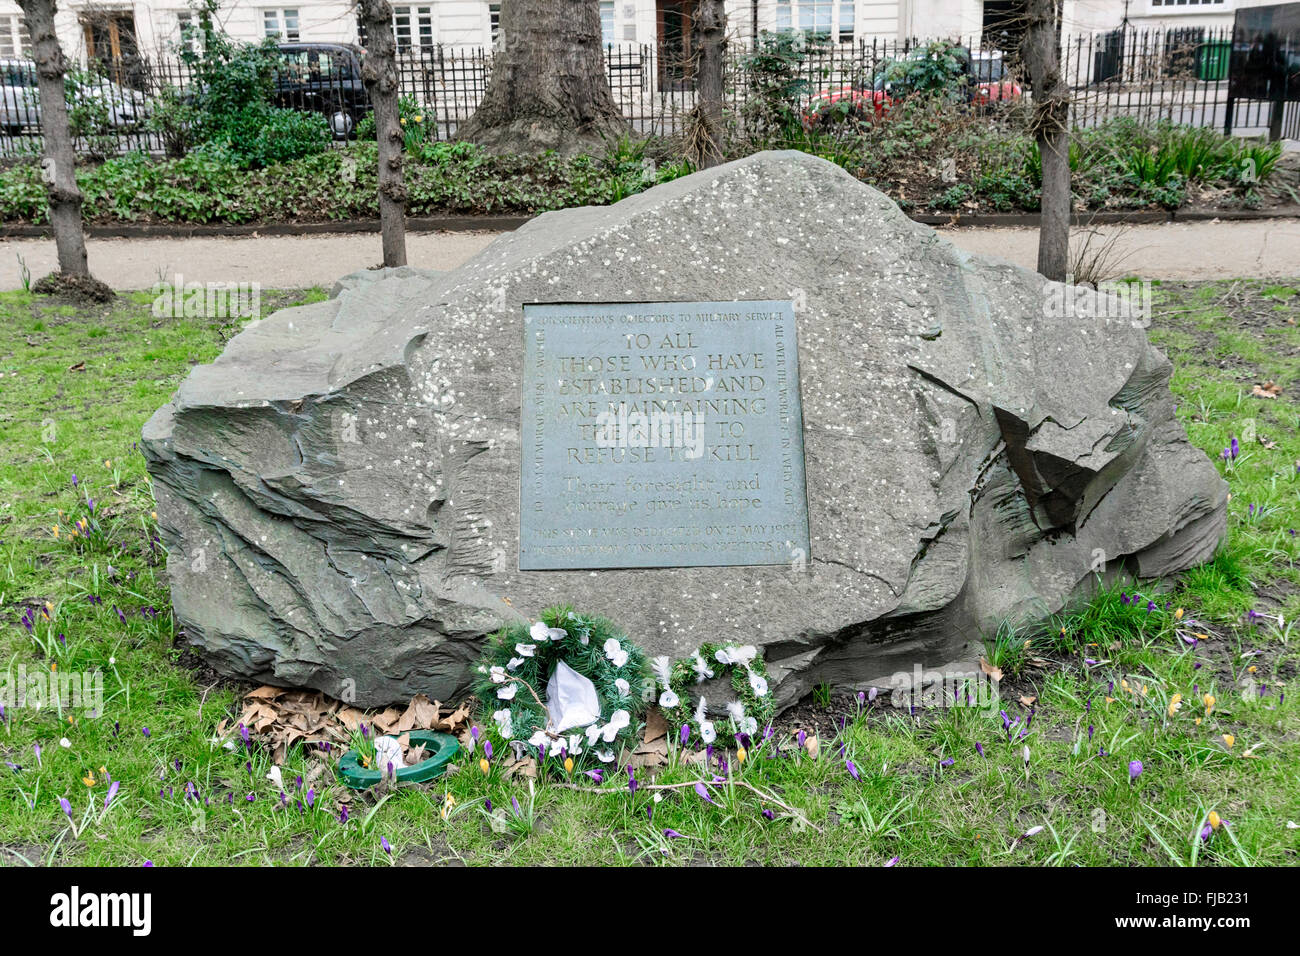 Conscientious objector memorial in Tavistock Square, London - Stock Image